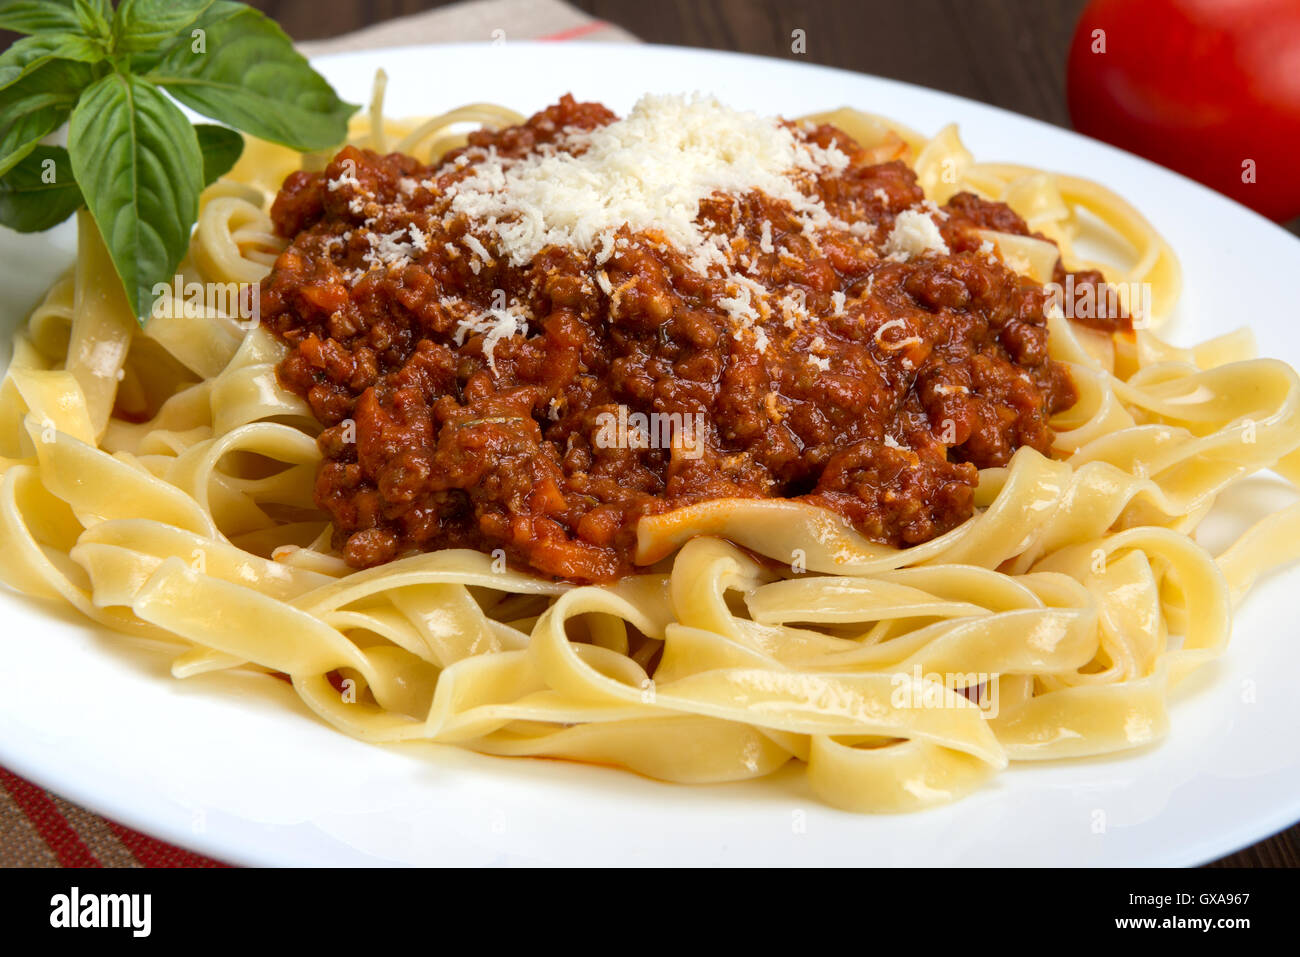 America S Test Kitchen Pressure Cooker Bolognese Sauce